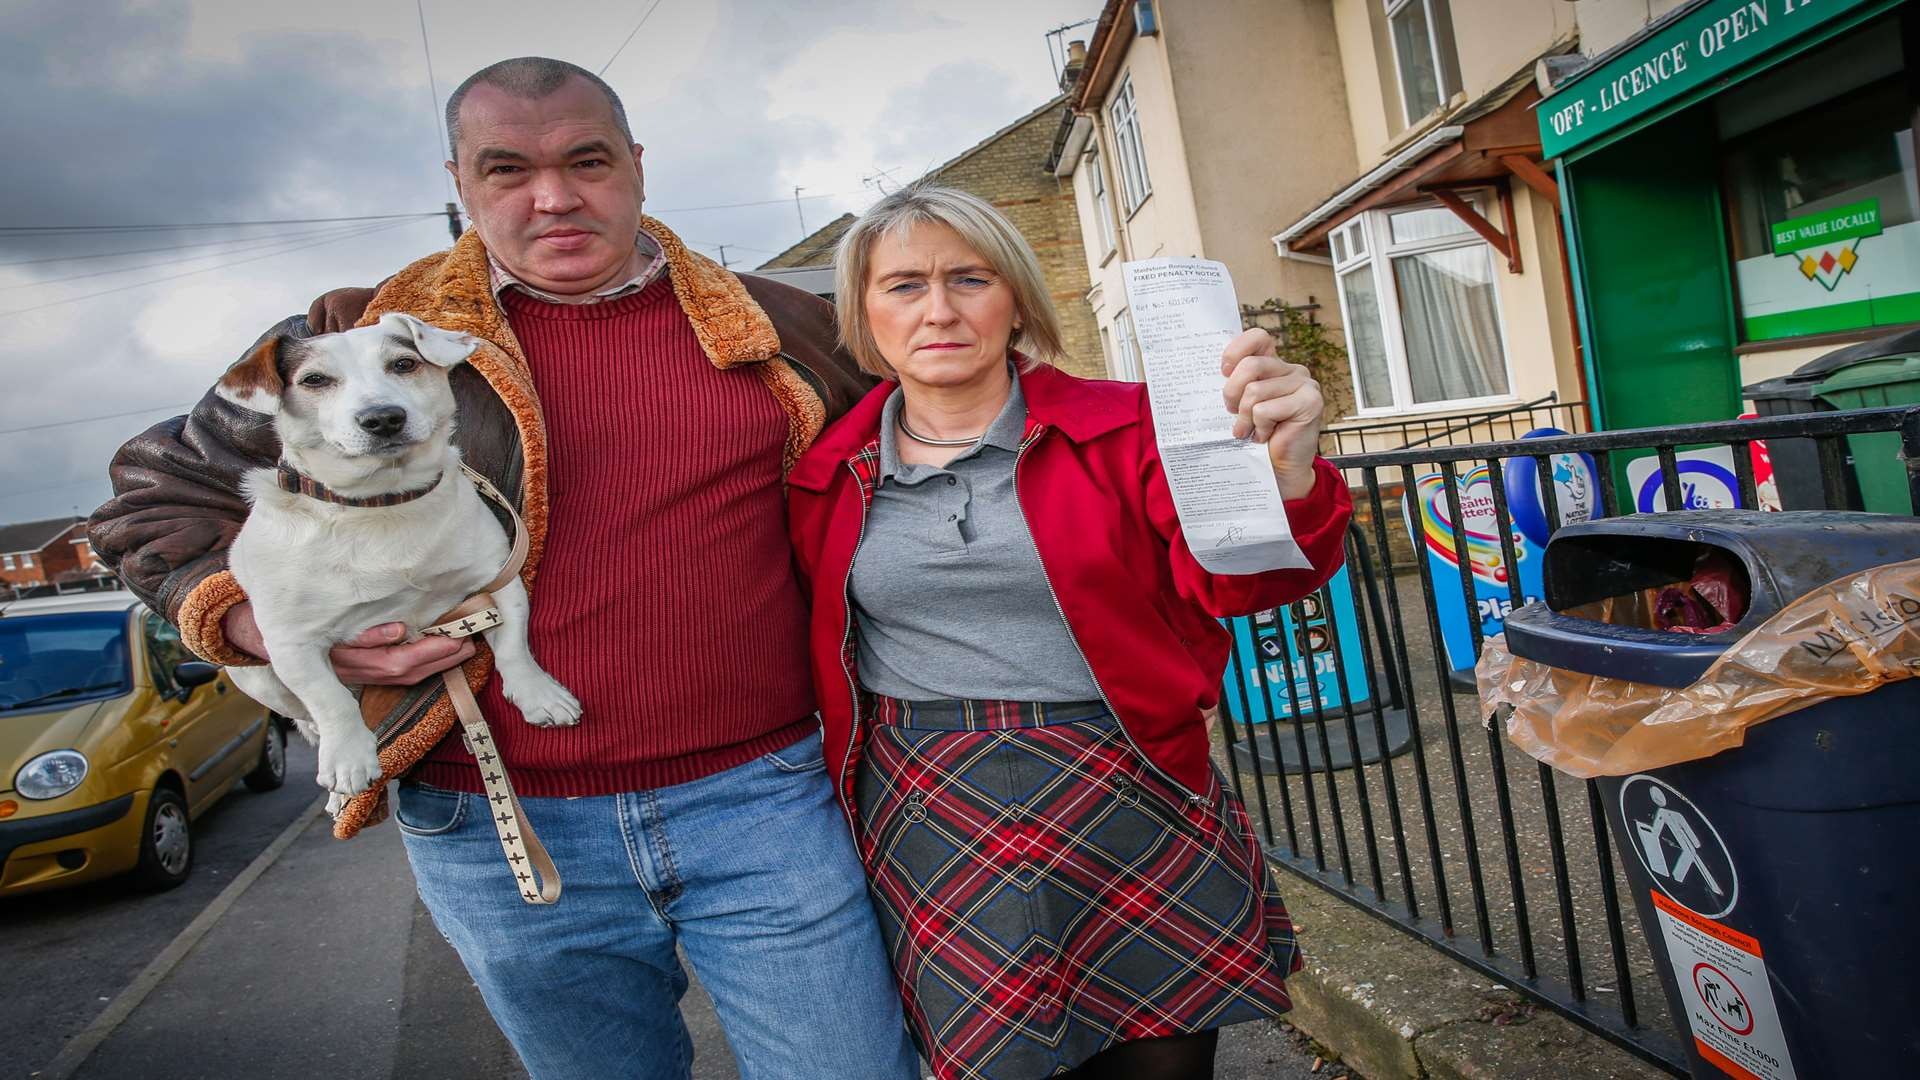 Amanda and Andy Evans with Digger the Jack Russell outside Manak Supermarket in Hartnup Street where they were fined for picking up dog mess and putting it in a litter bin